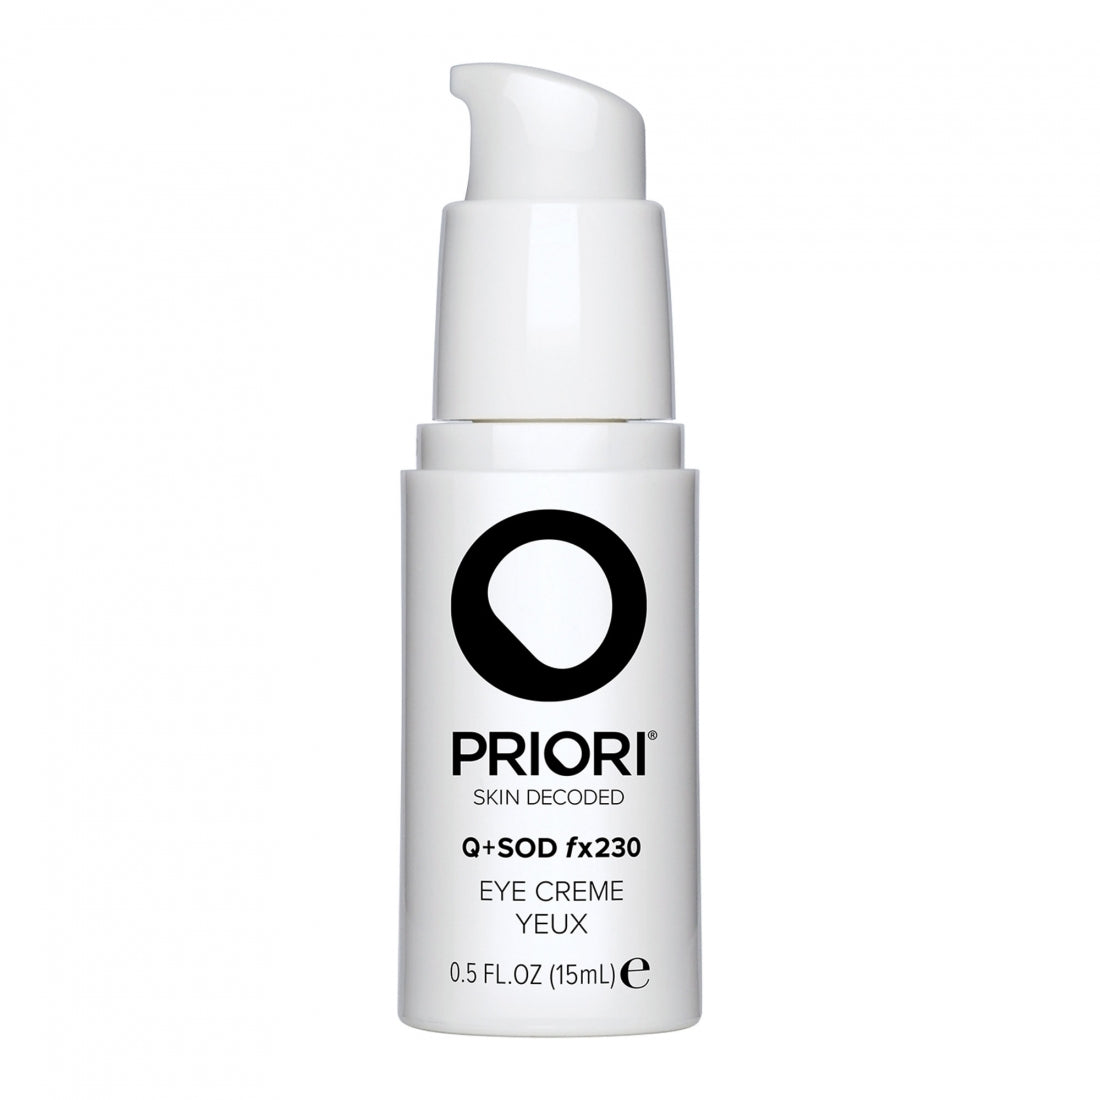 Priori Q+SOD fx230 Eye Creme 15ml